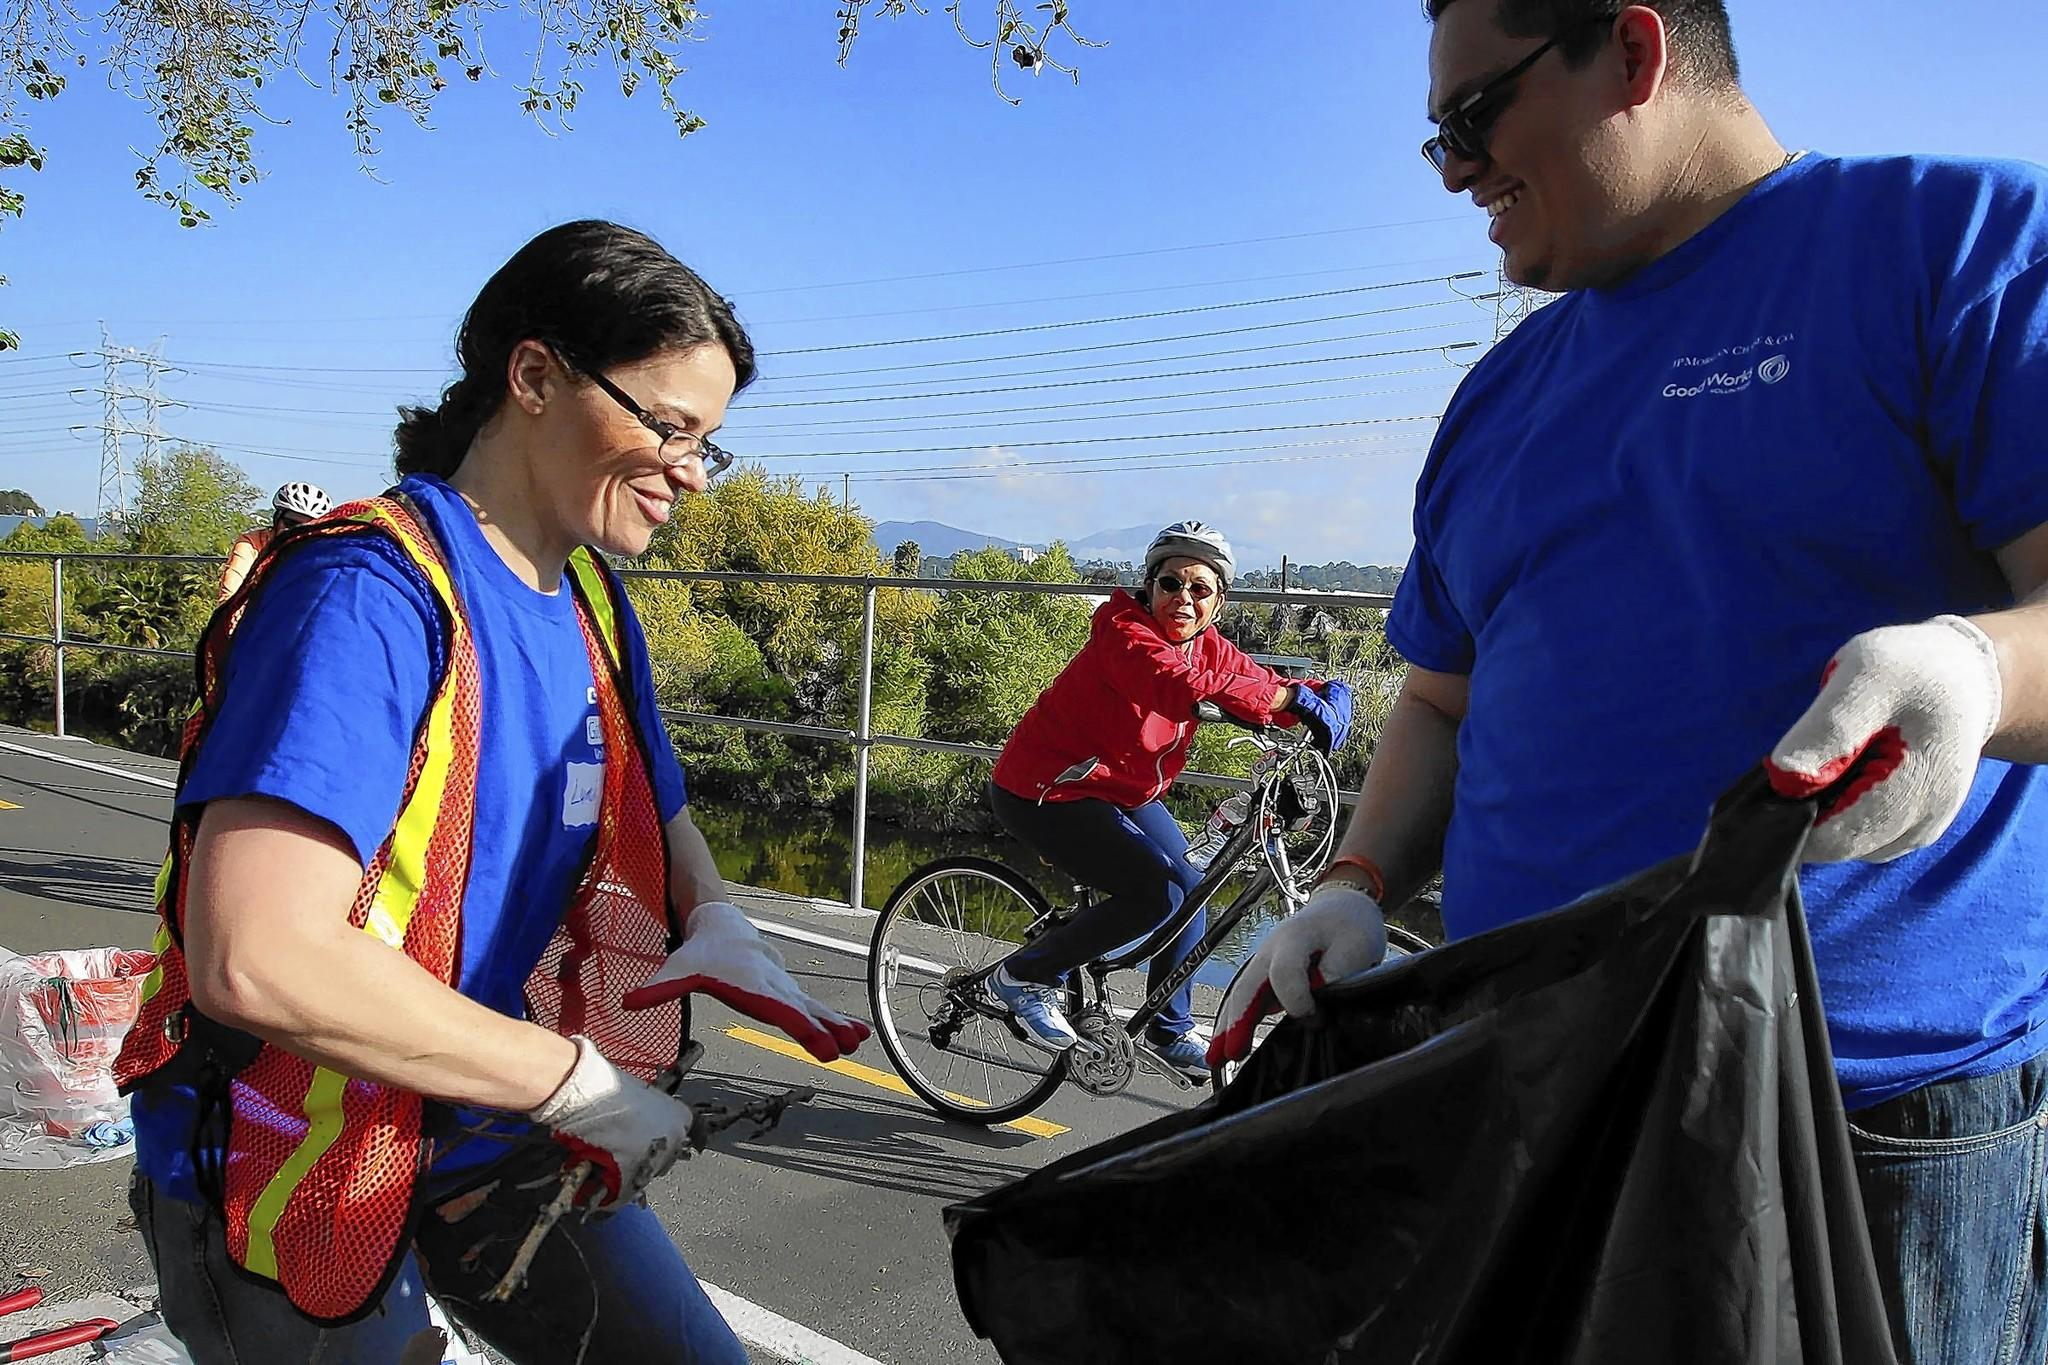 A bicyclist encourages volunteers Lumi Powell and Tomas Marquez, who were removing weeds and dead tree branches alongside the L.A. River as part of an ongoing effort by city officials and the community to restore the waterway.